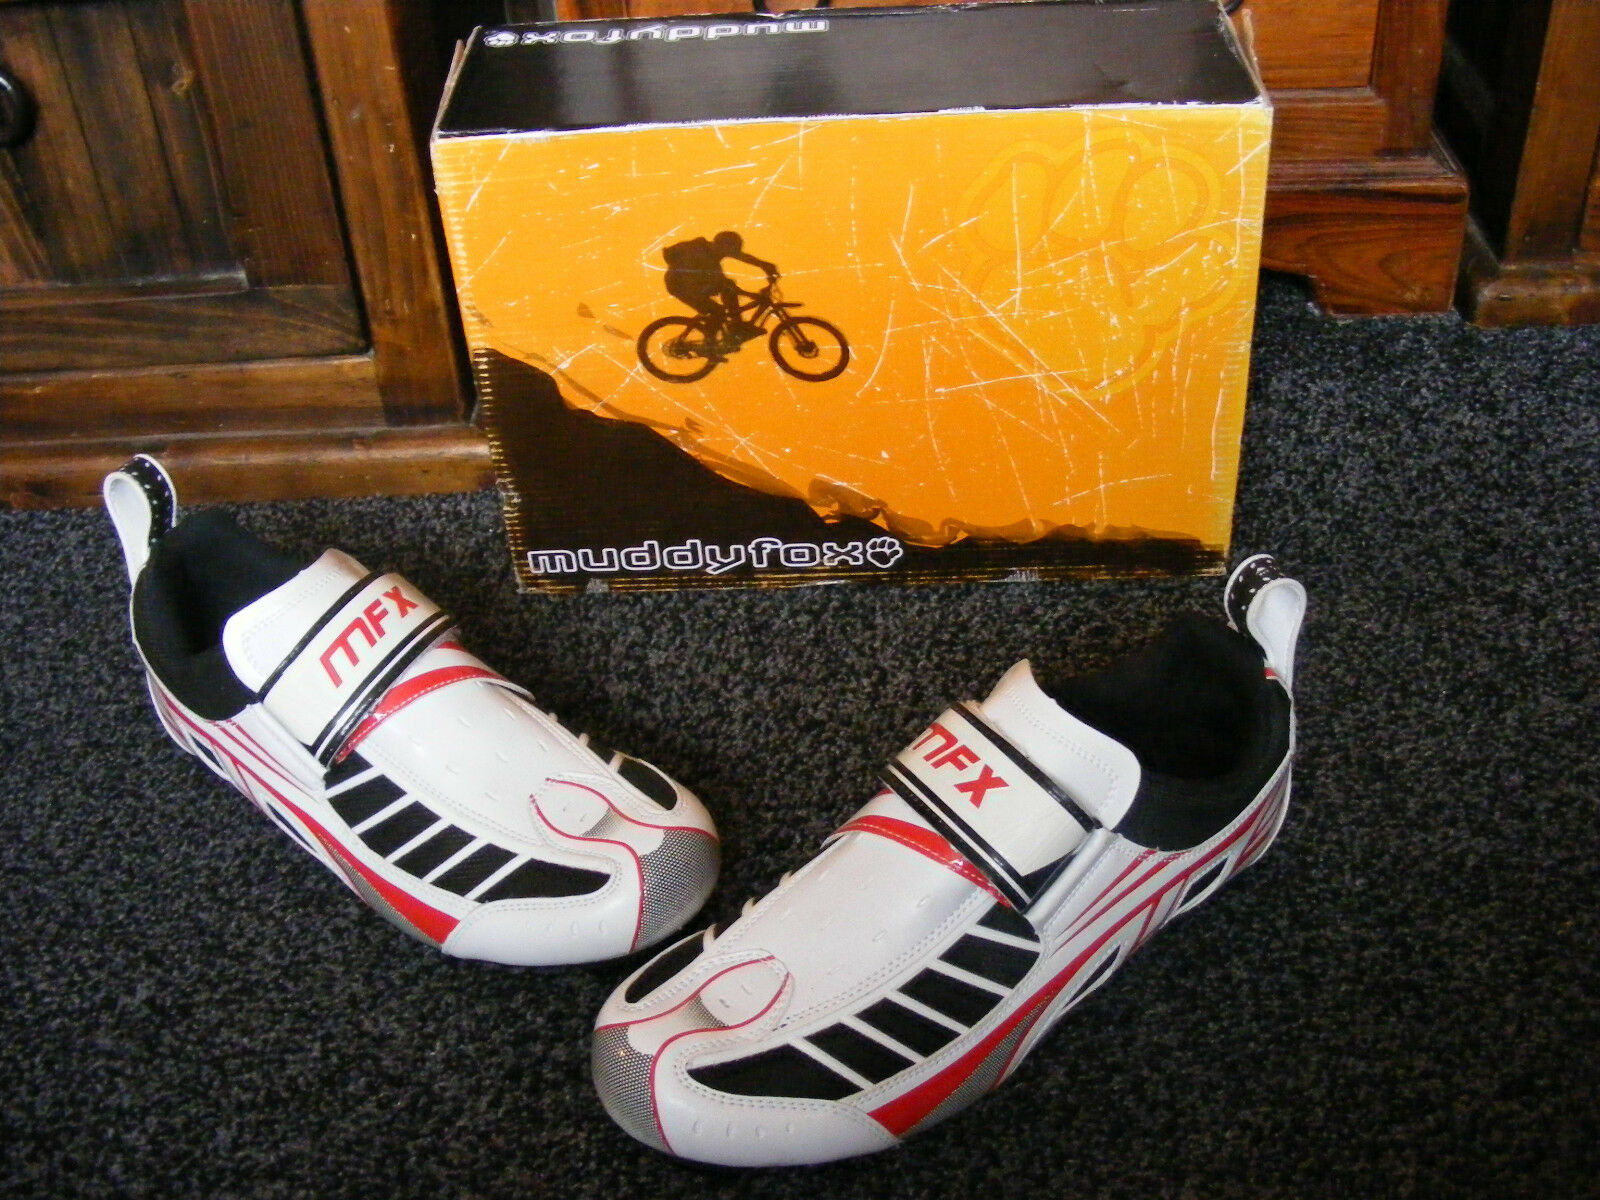 New MuddyFox Muddy Fox RBS 300  Herren Cycling Bicycle Bike Schuhes UK 11 EU 46 US 12